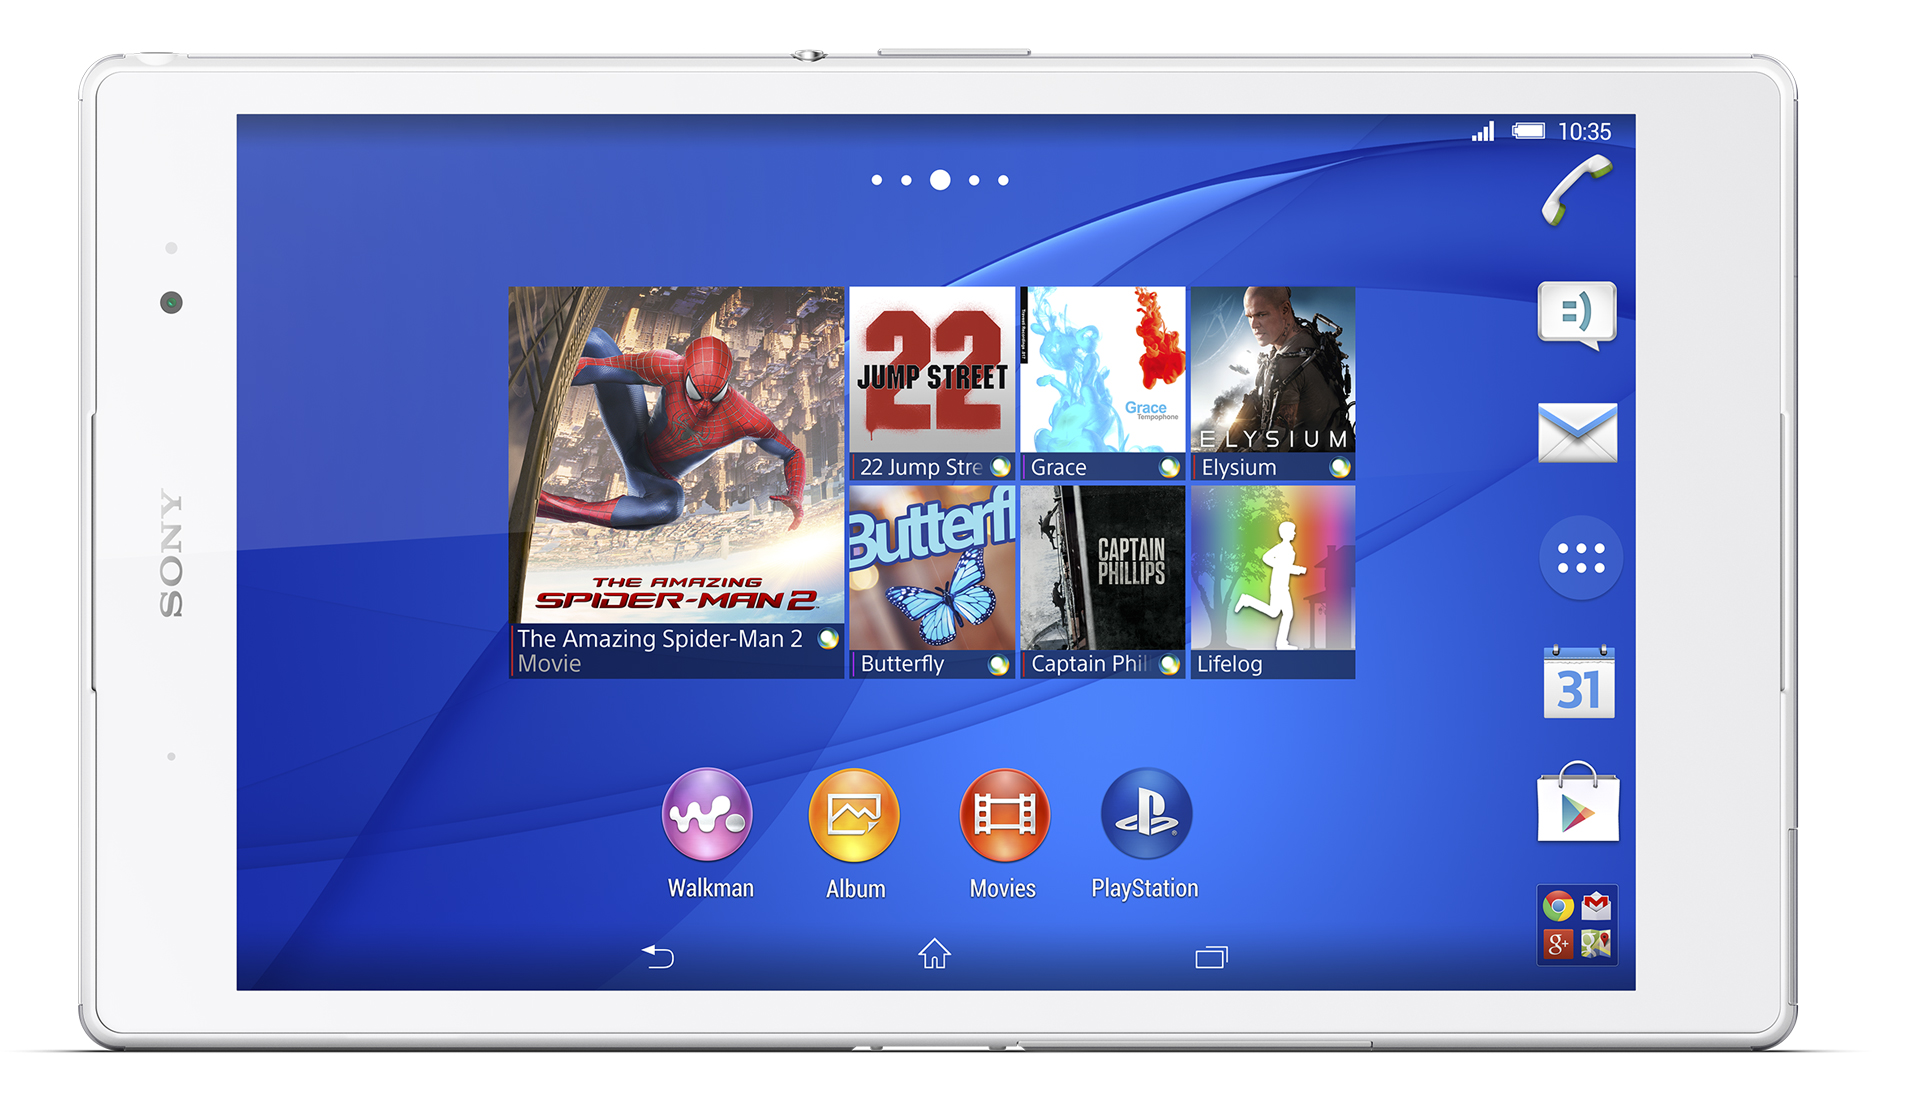 The Sony Xperia Z3 Tablet Compact.